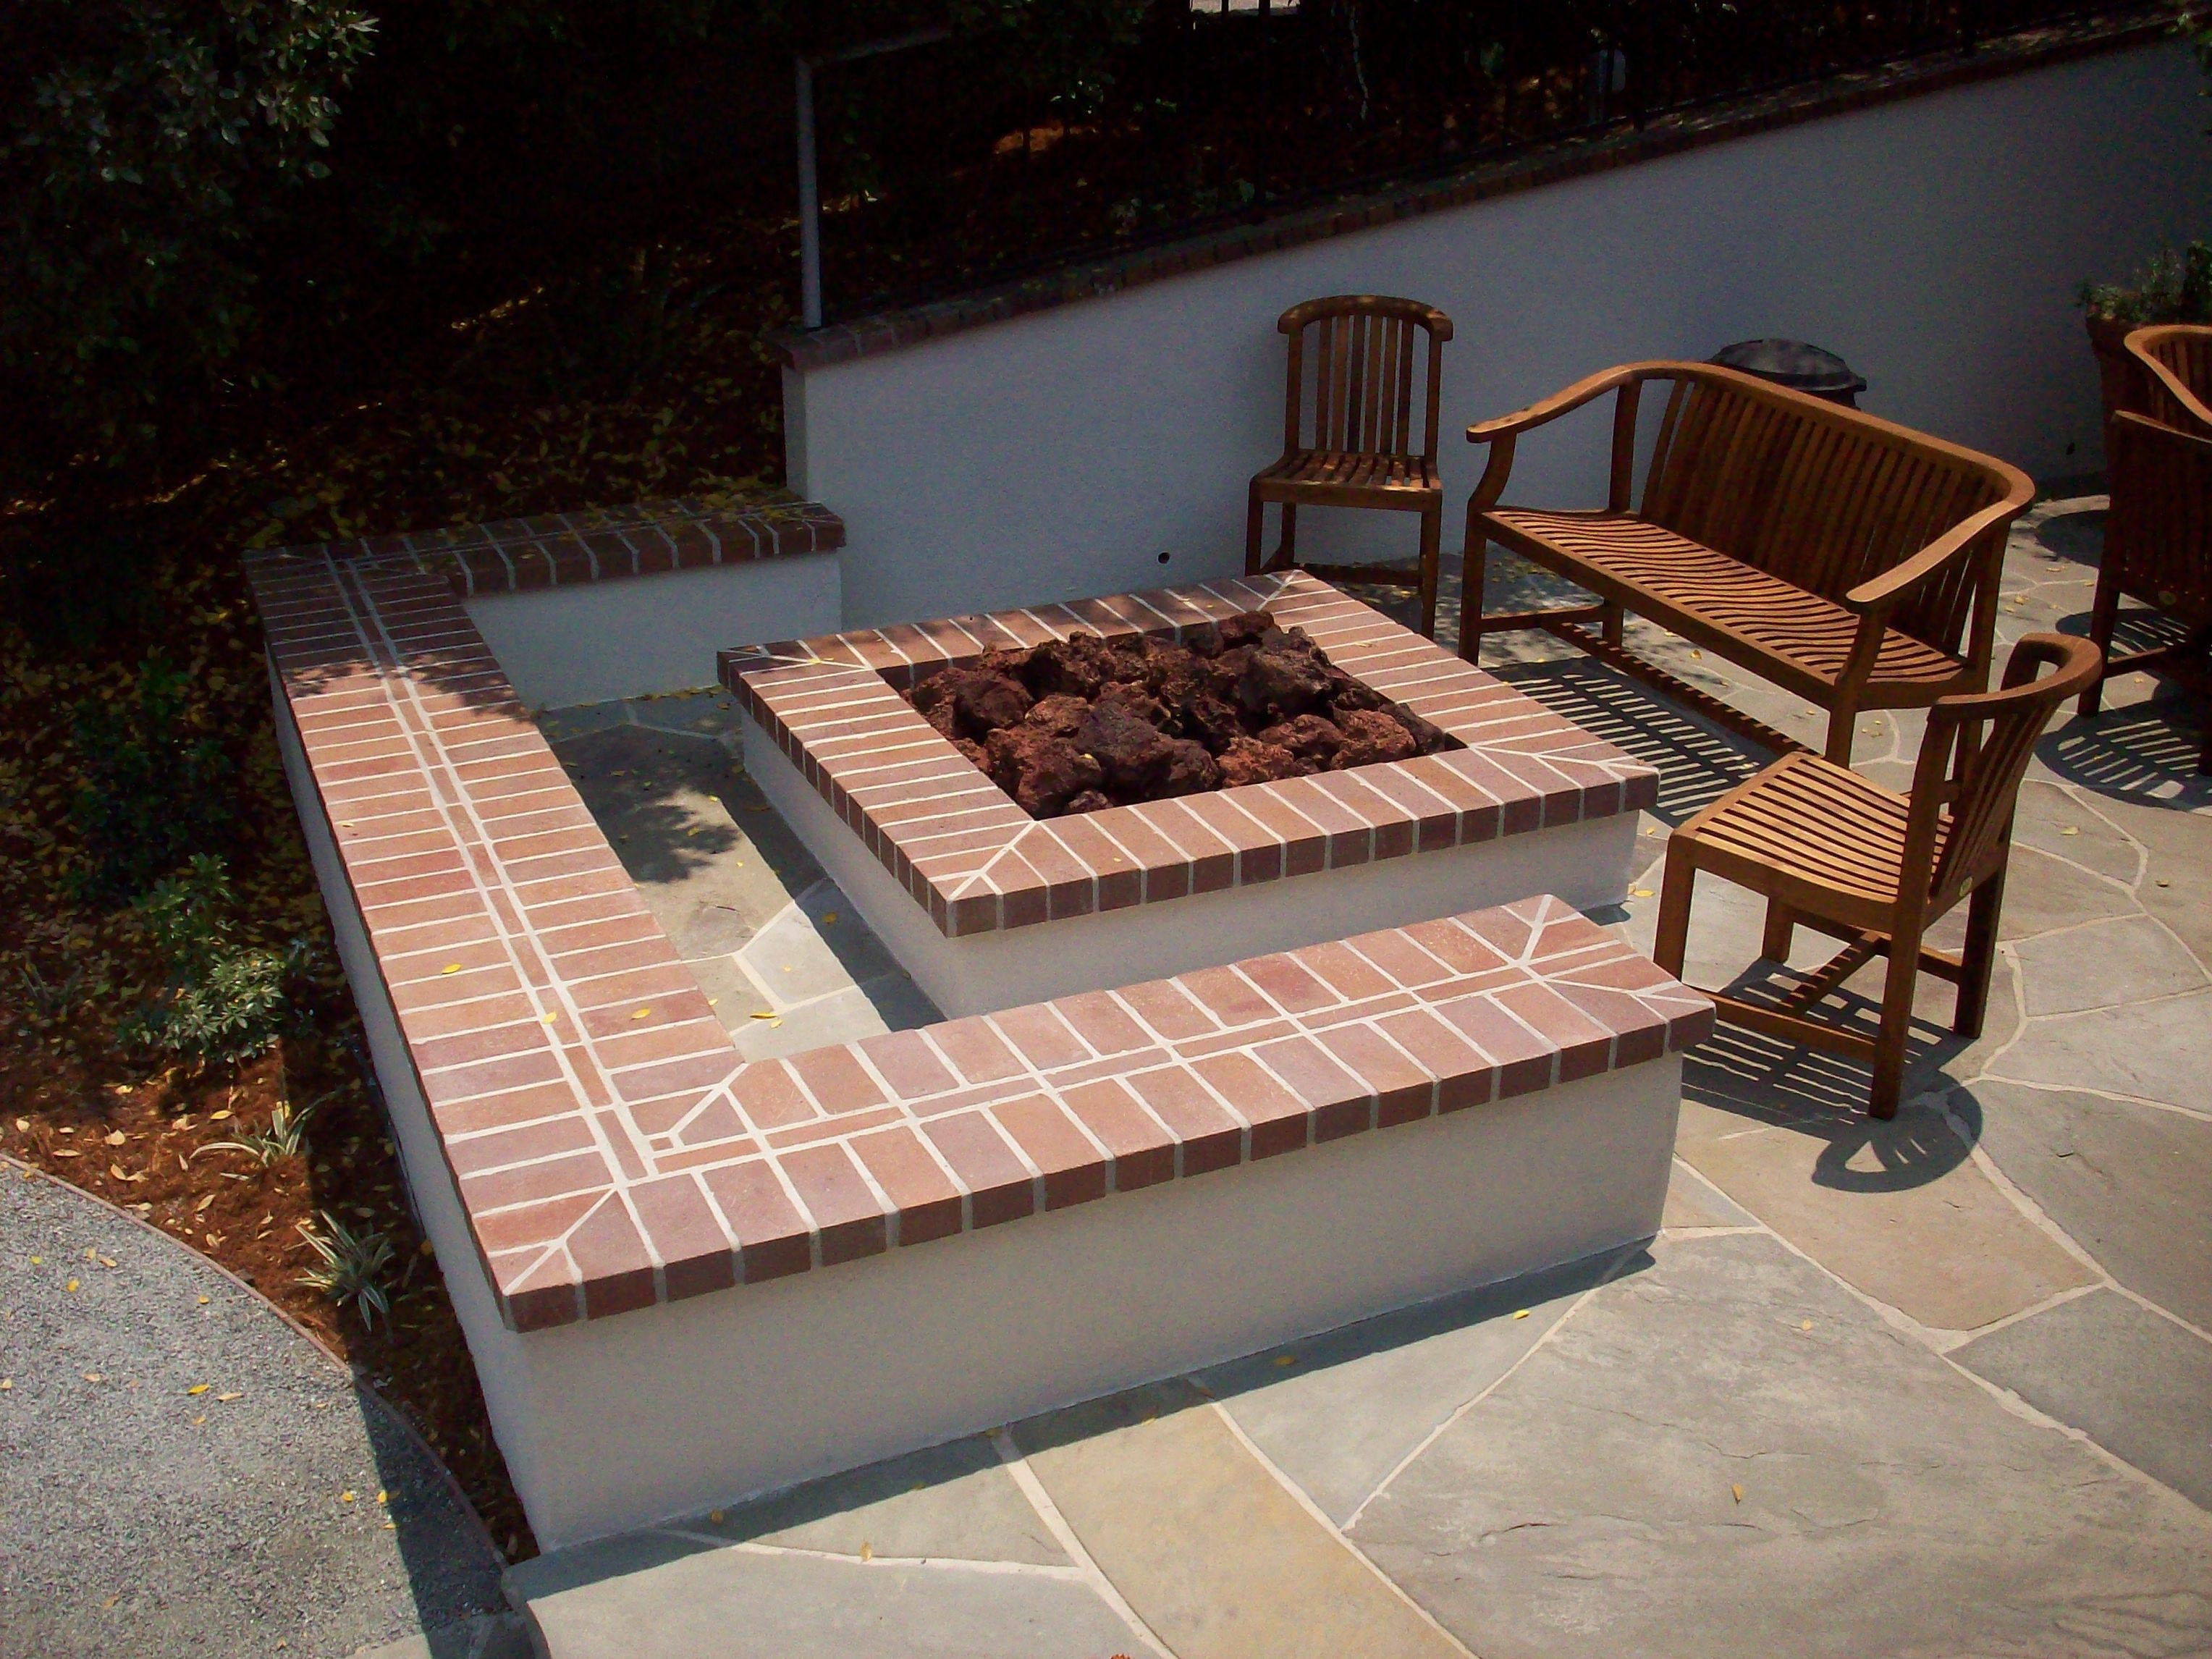 Square Fire Pit Designs : Square brick fire pit design ideas